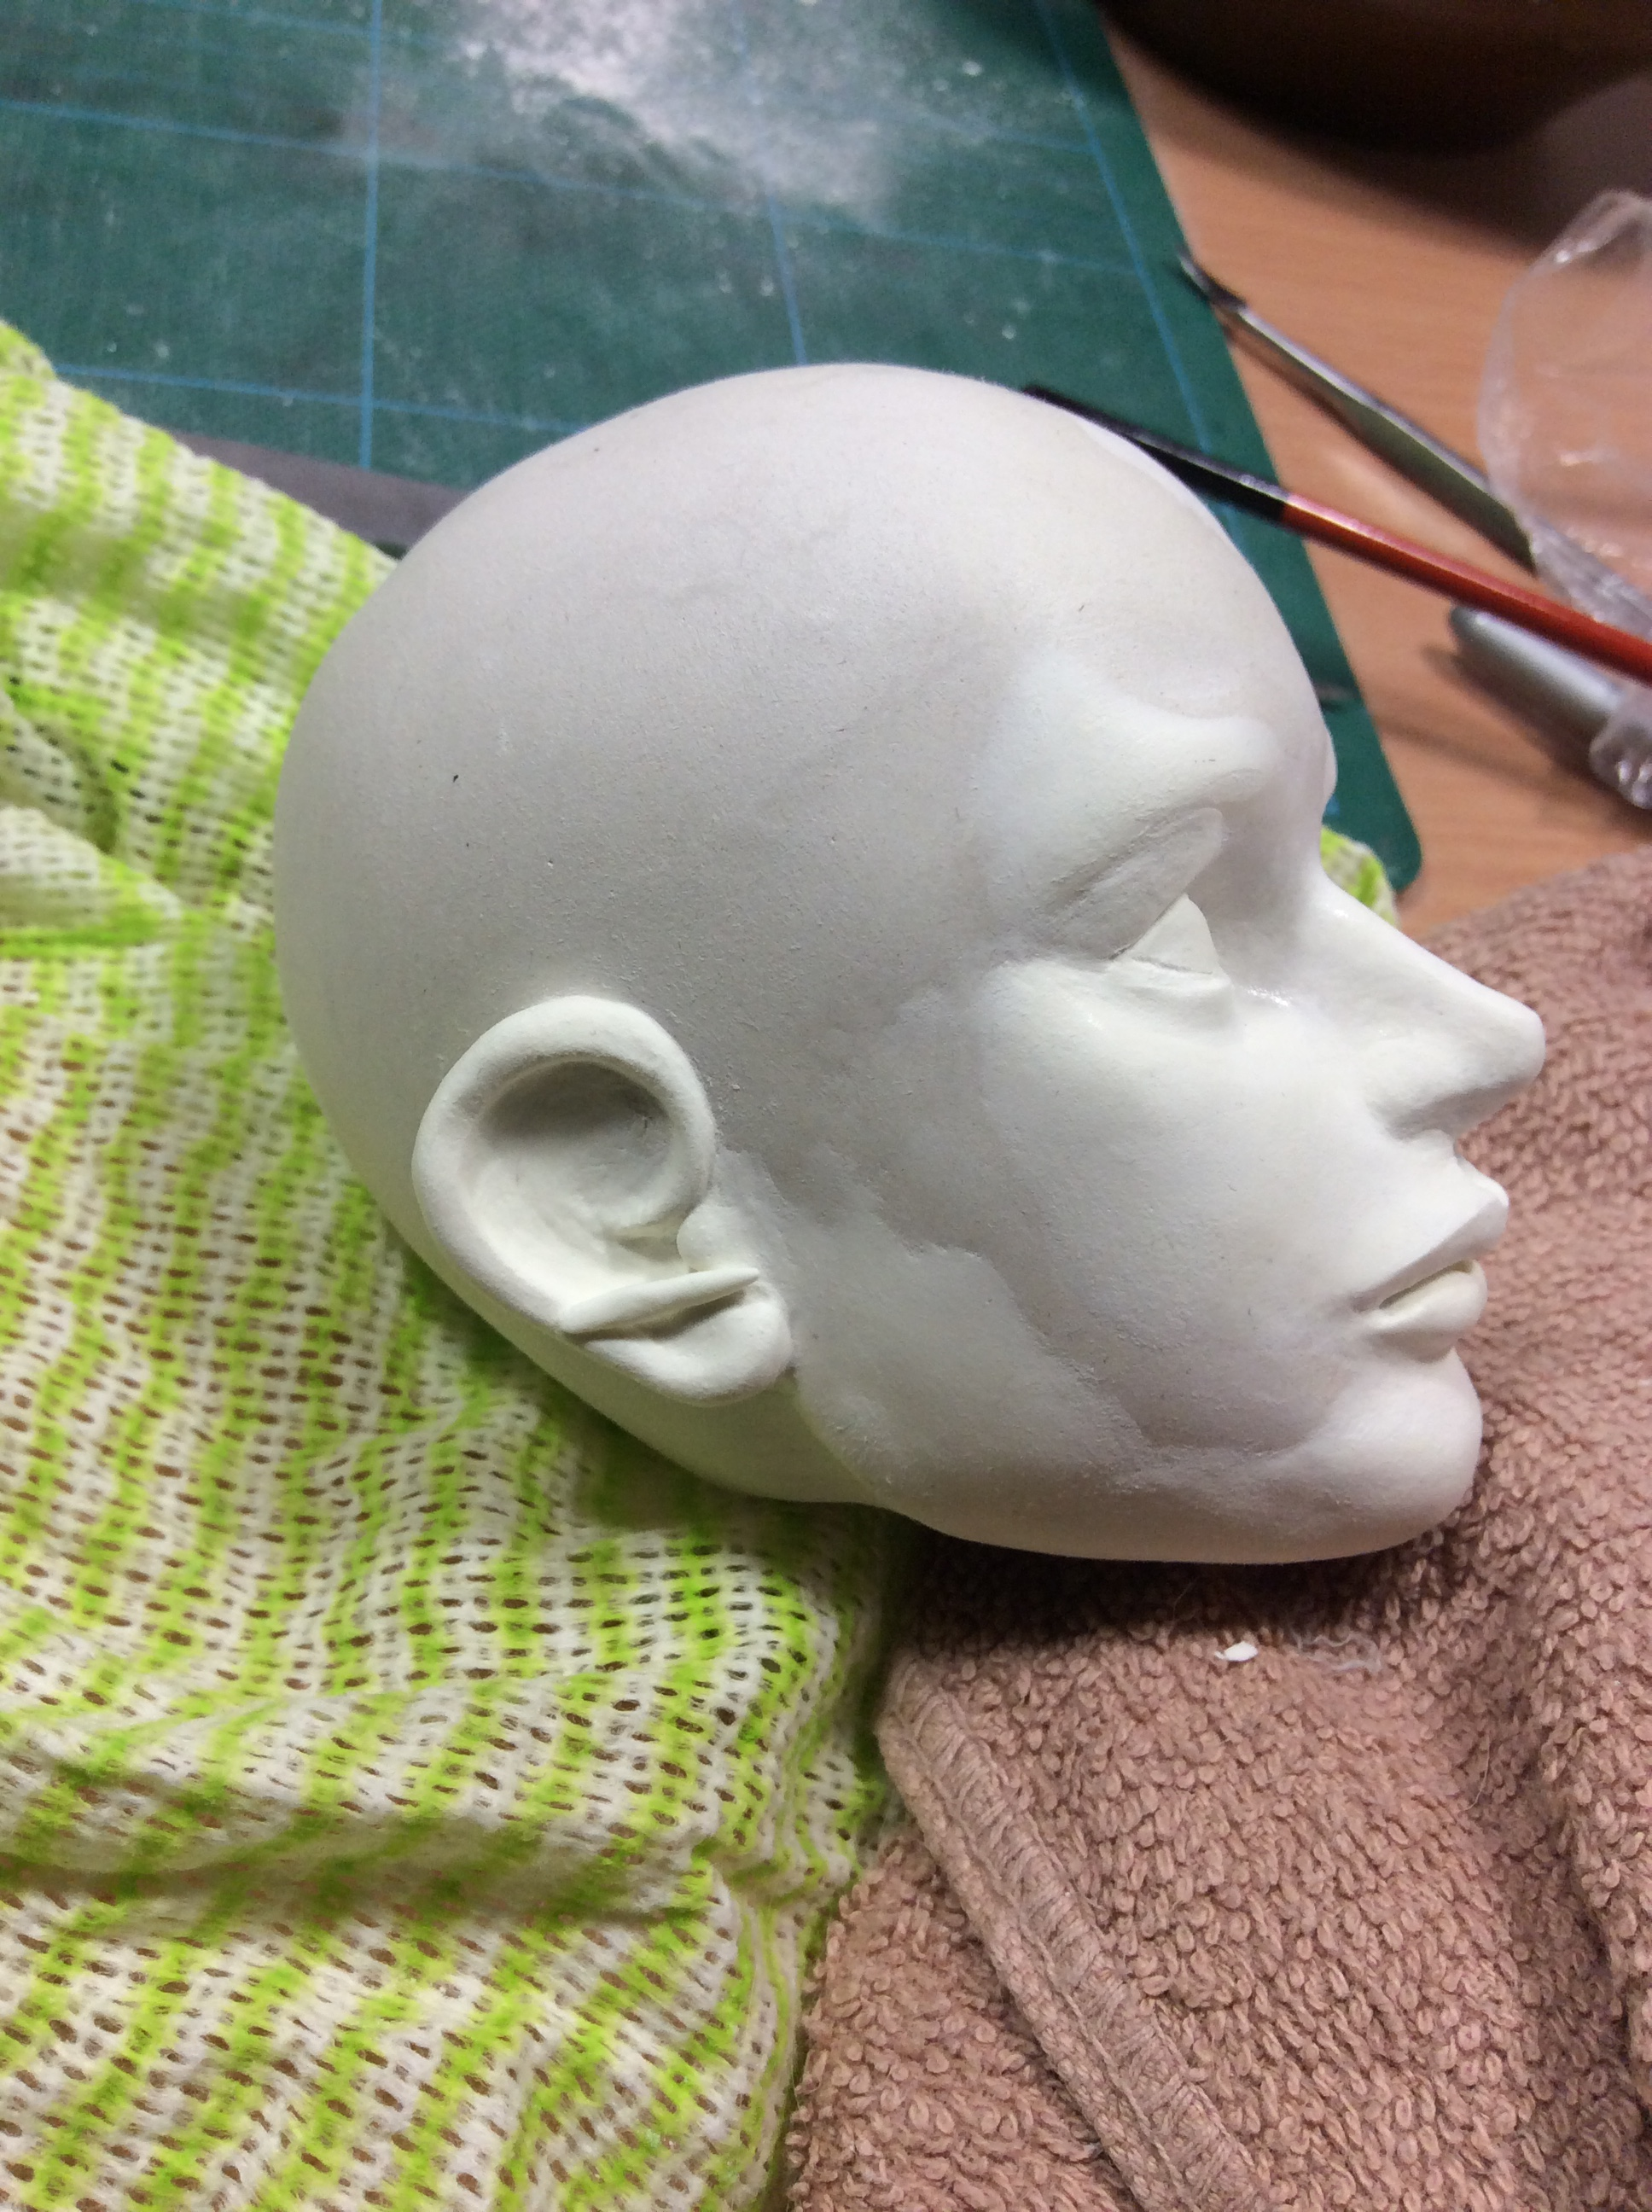 jemse---my-first-doll-head-making-progress-diary-part-3_31602574233_o